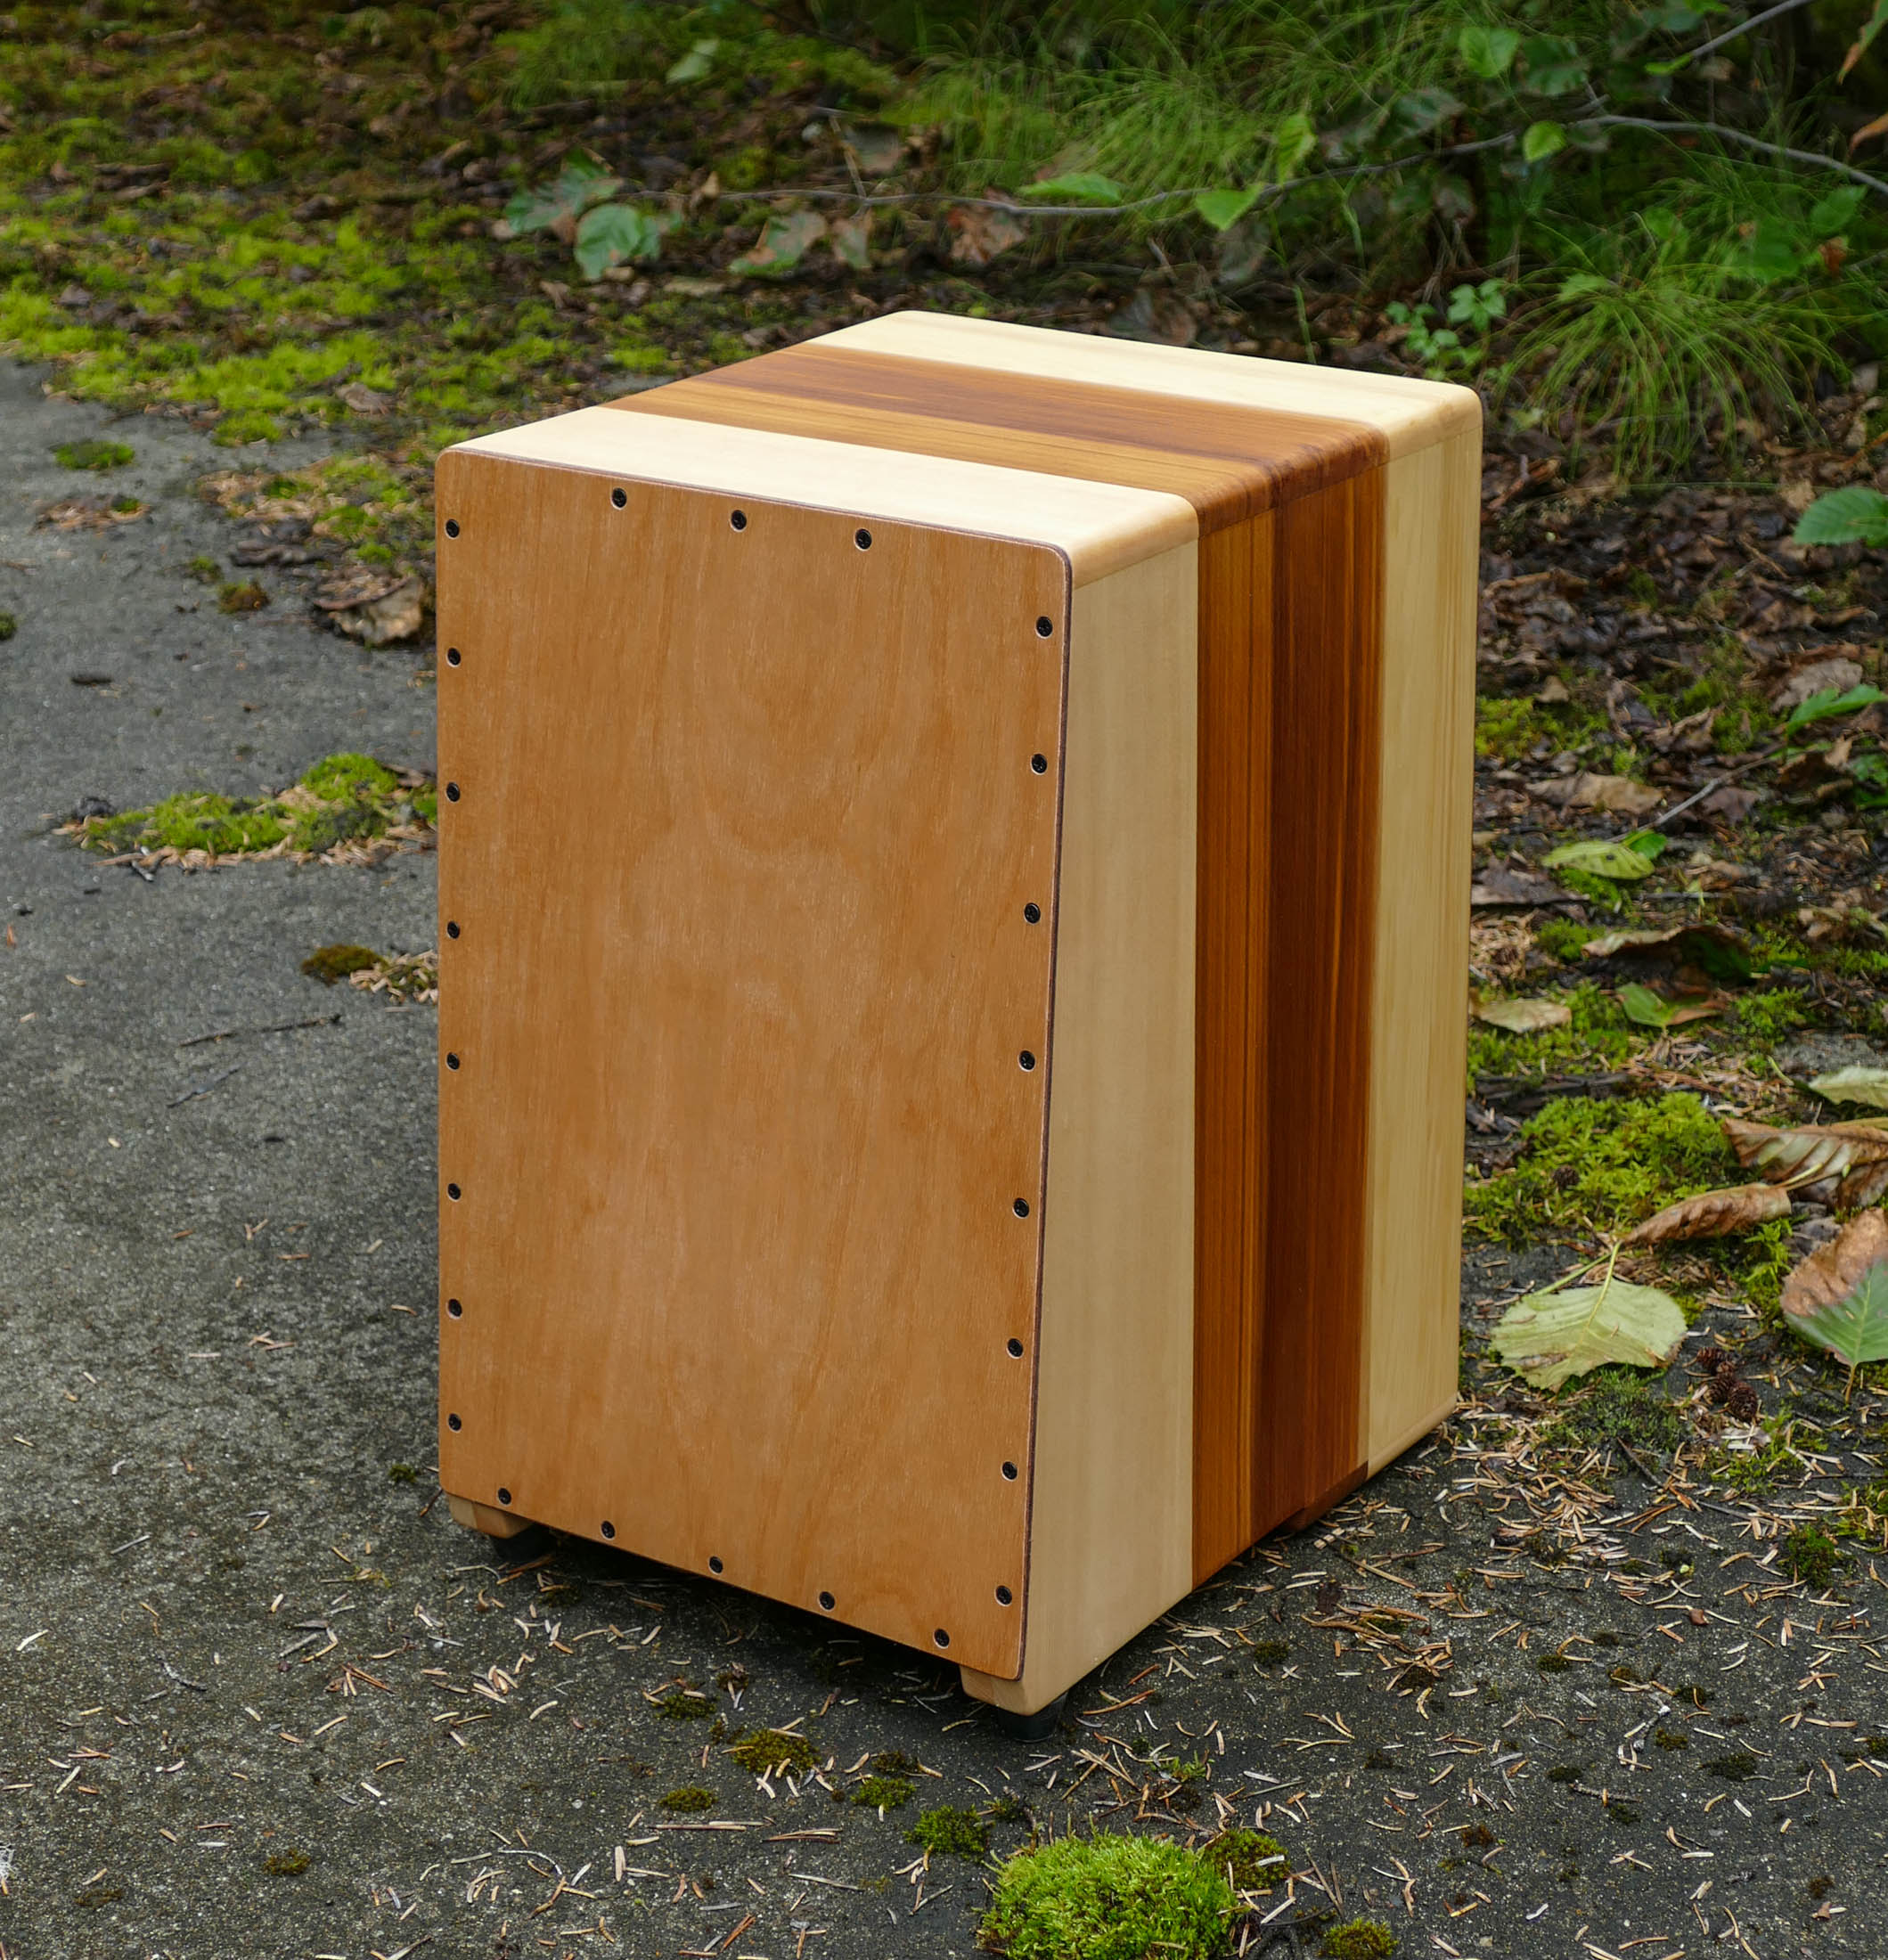 Completed cajon with a 100% pure tung oil finish.